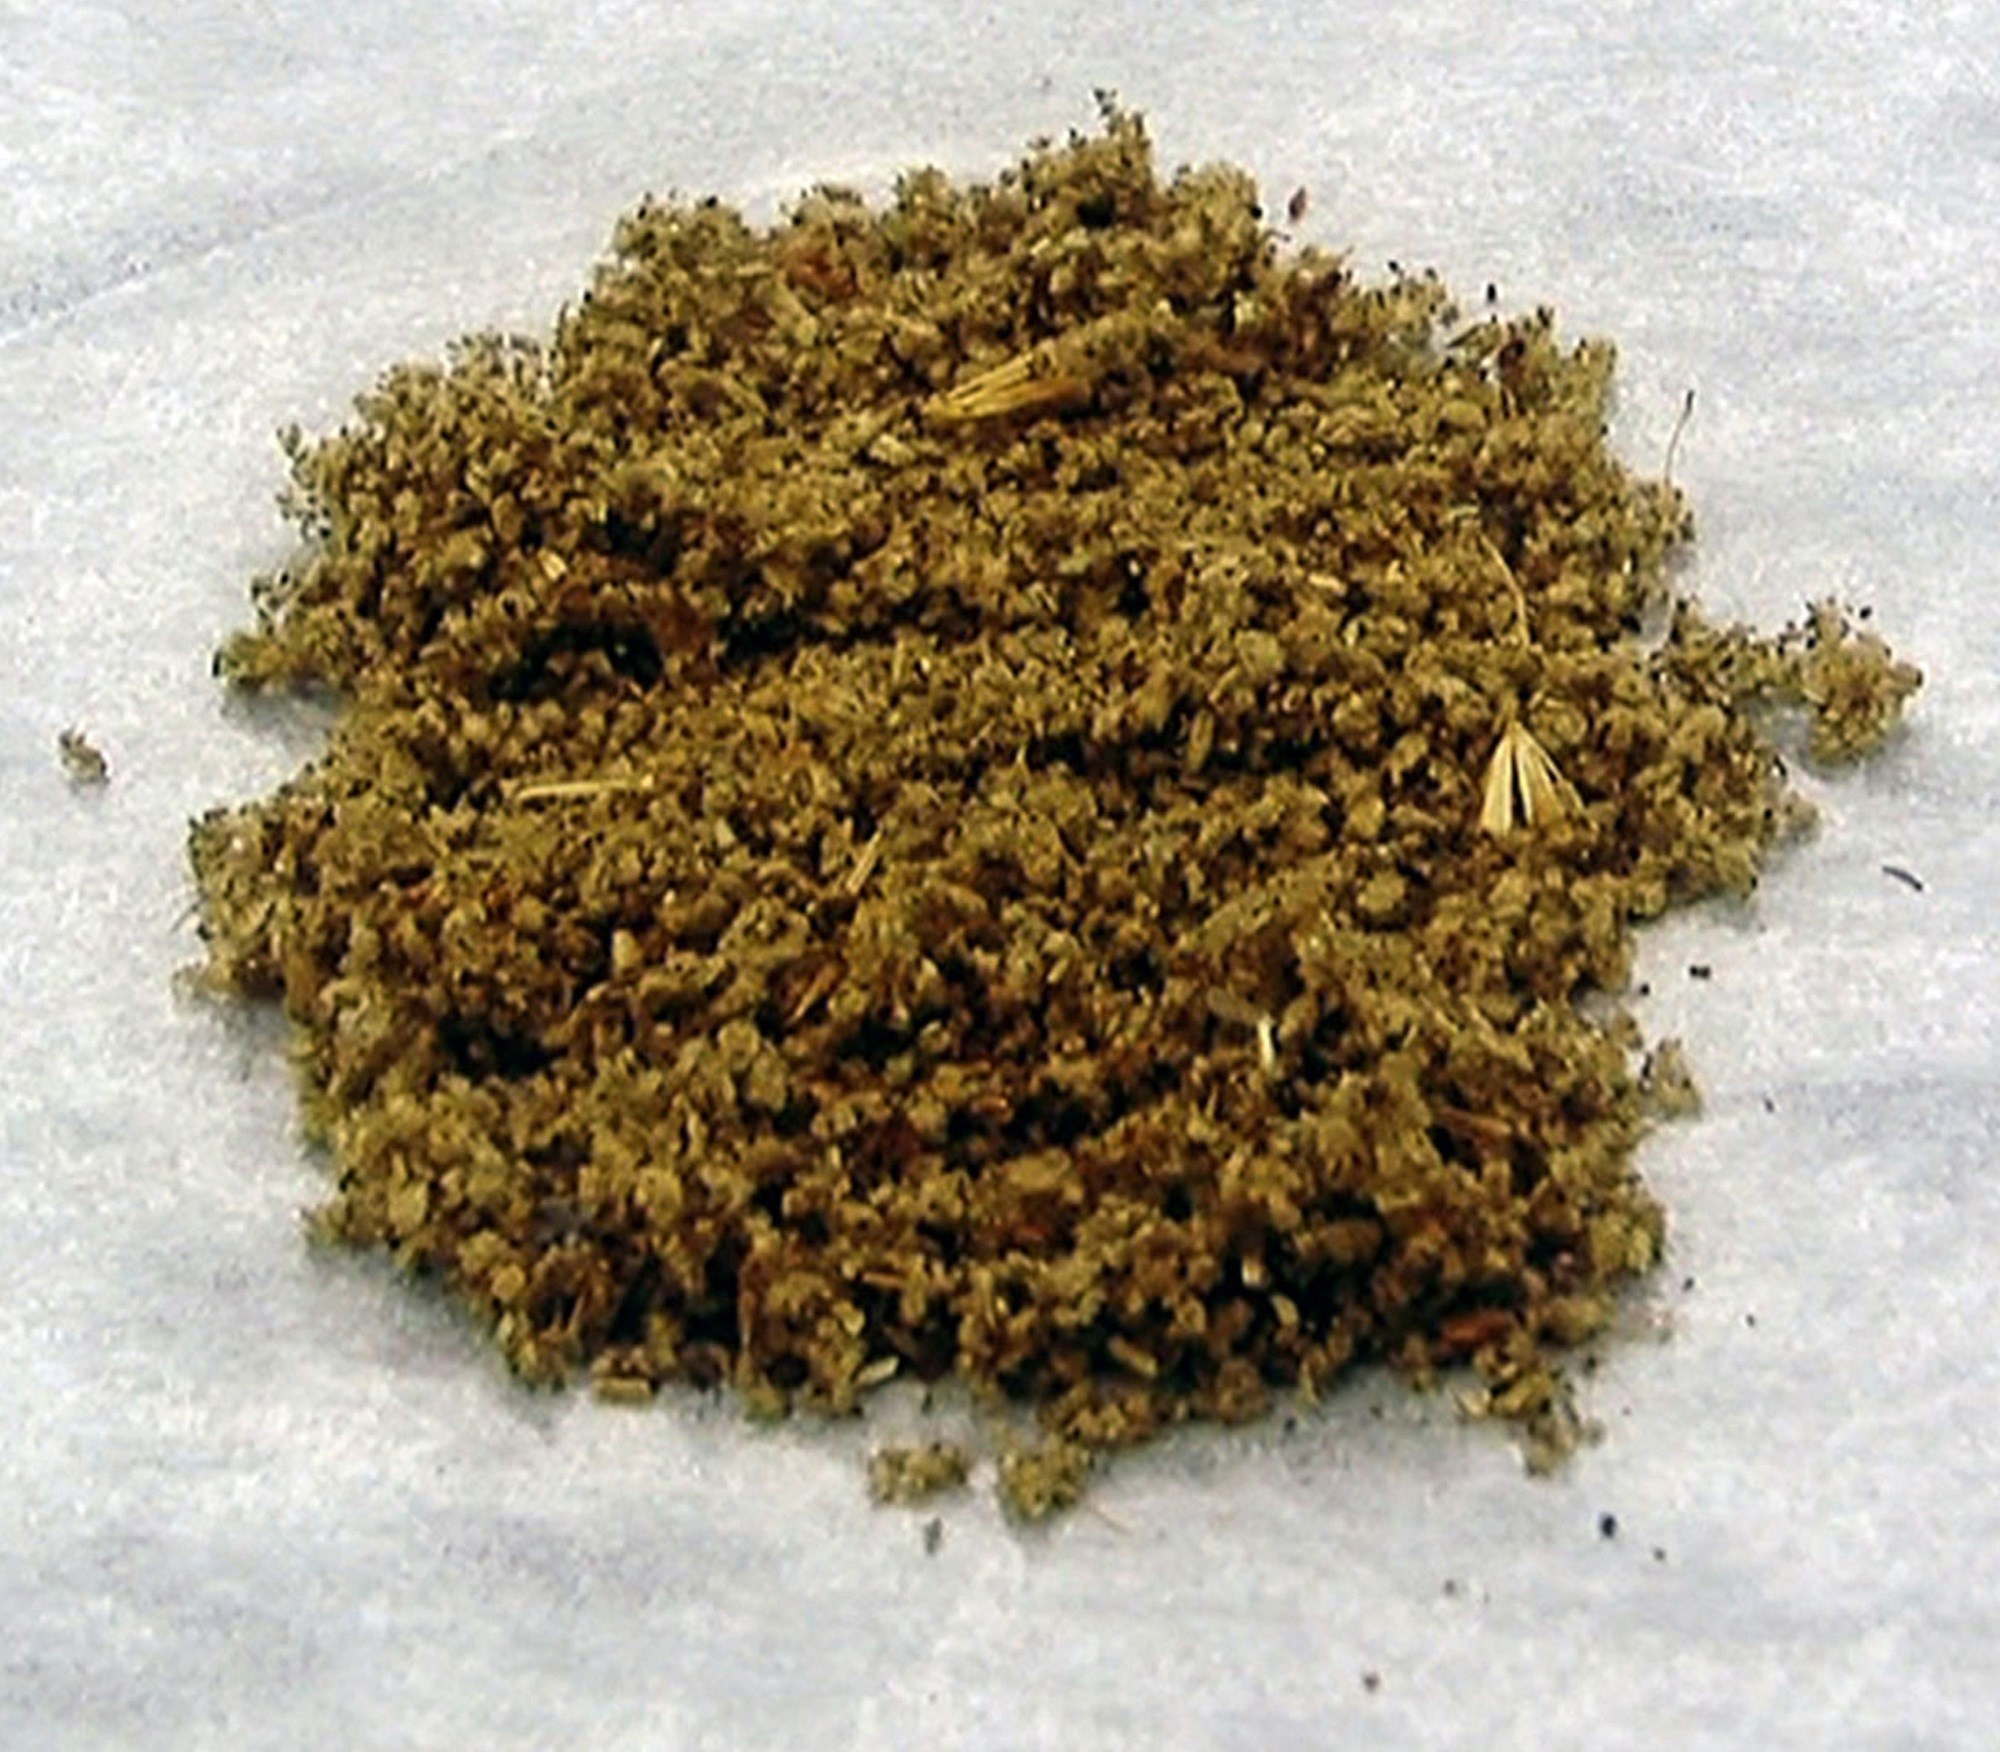 Producers of these synthetic cannabinoids have added brodifacoum, which is thought to extend the duration of the high. <i>Credit: DEA/Science Source</i>